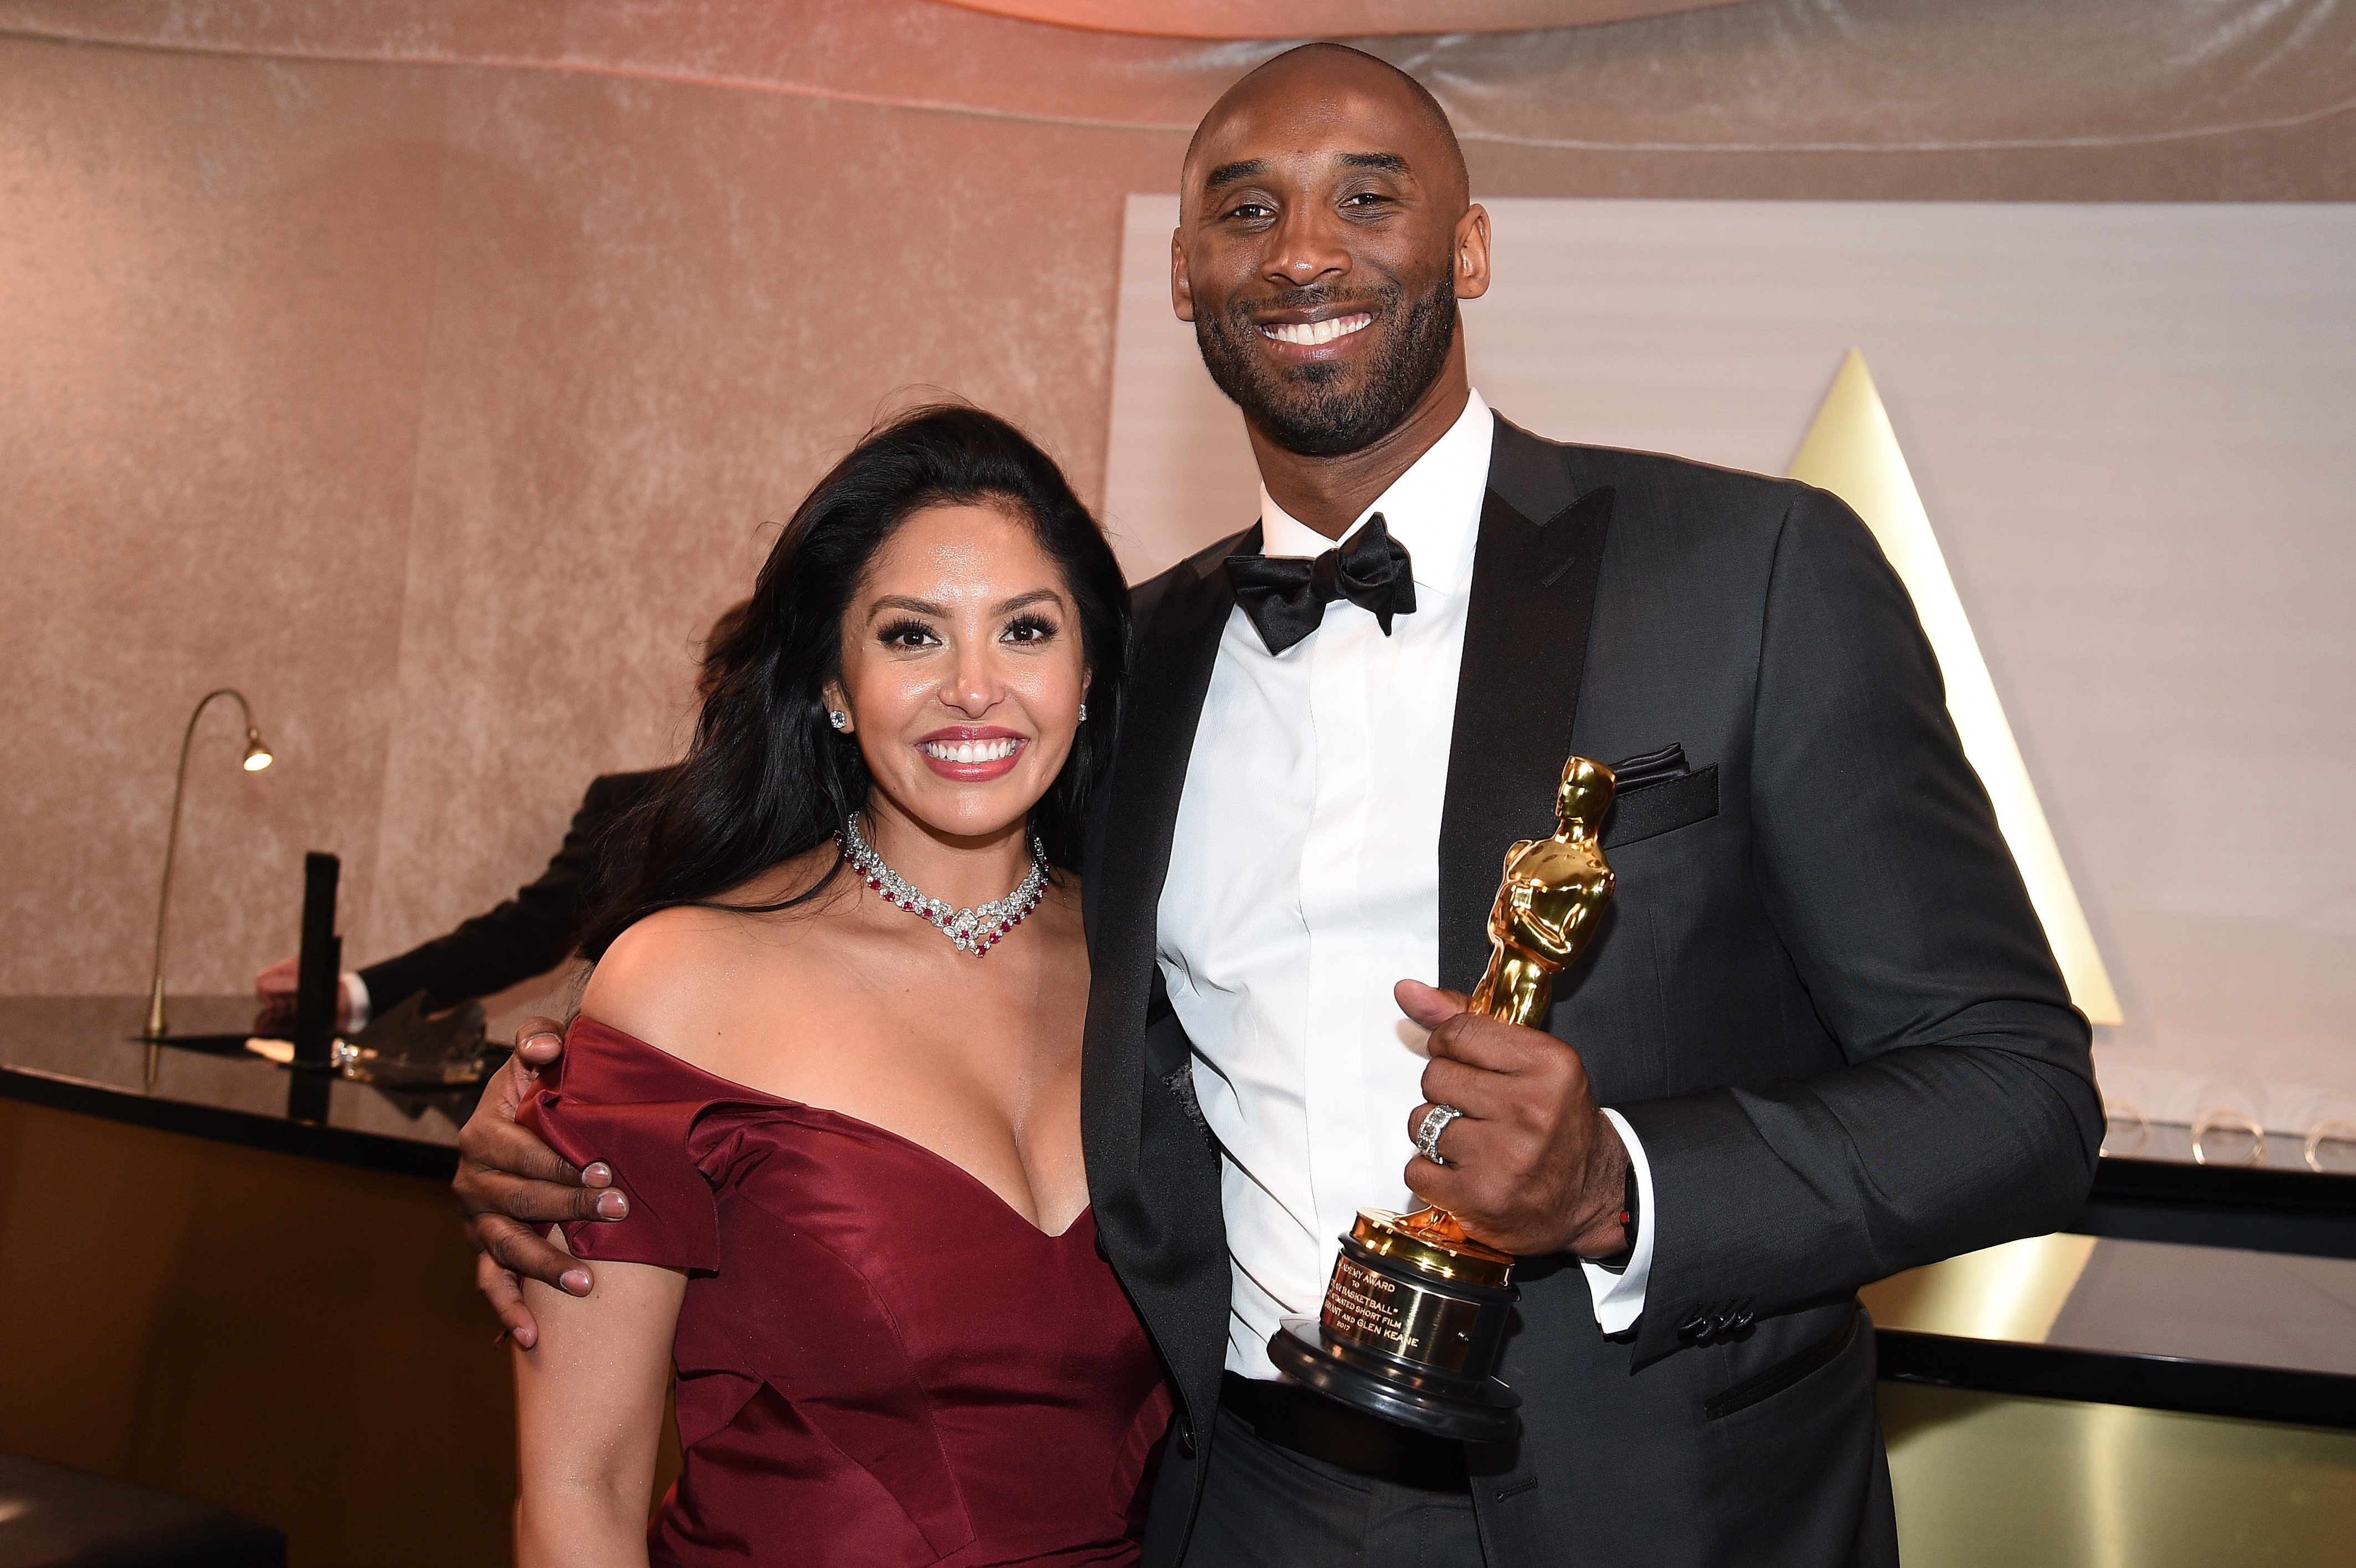 Kobe Bryant & Vanessa Laine Bryant at the 90th Annual Academy Awards Governors Ball on March 4, 2018 in California | Photo: Getty Images